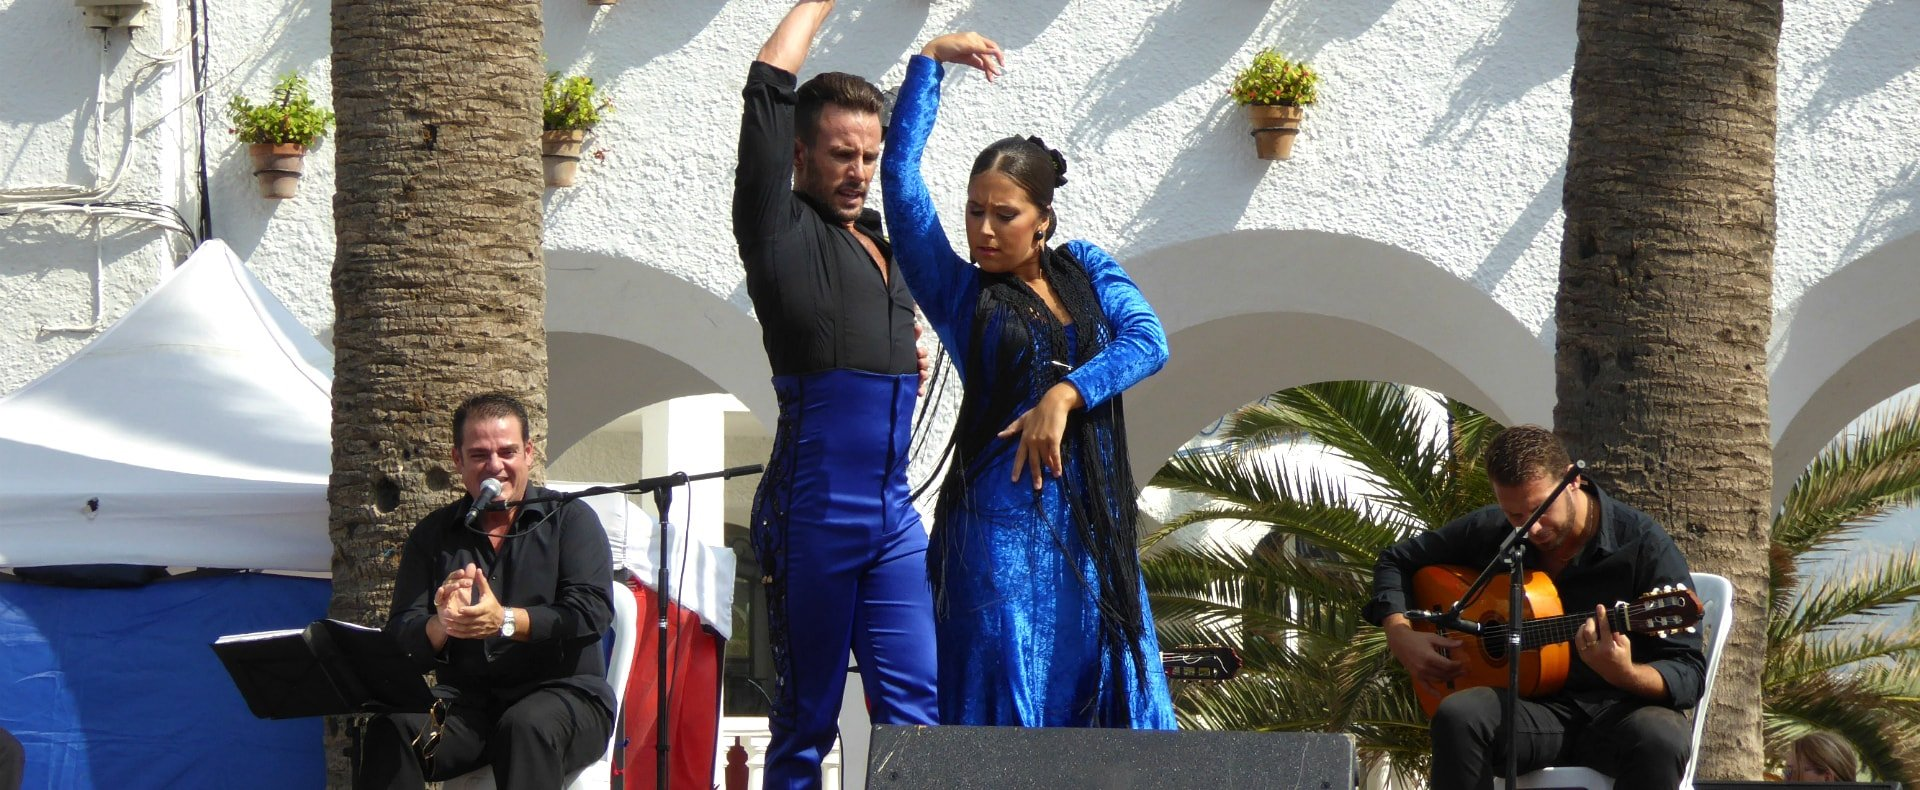 Flamenco Show, Spain